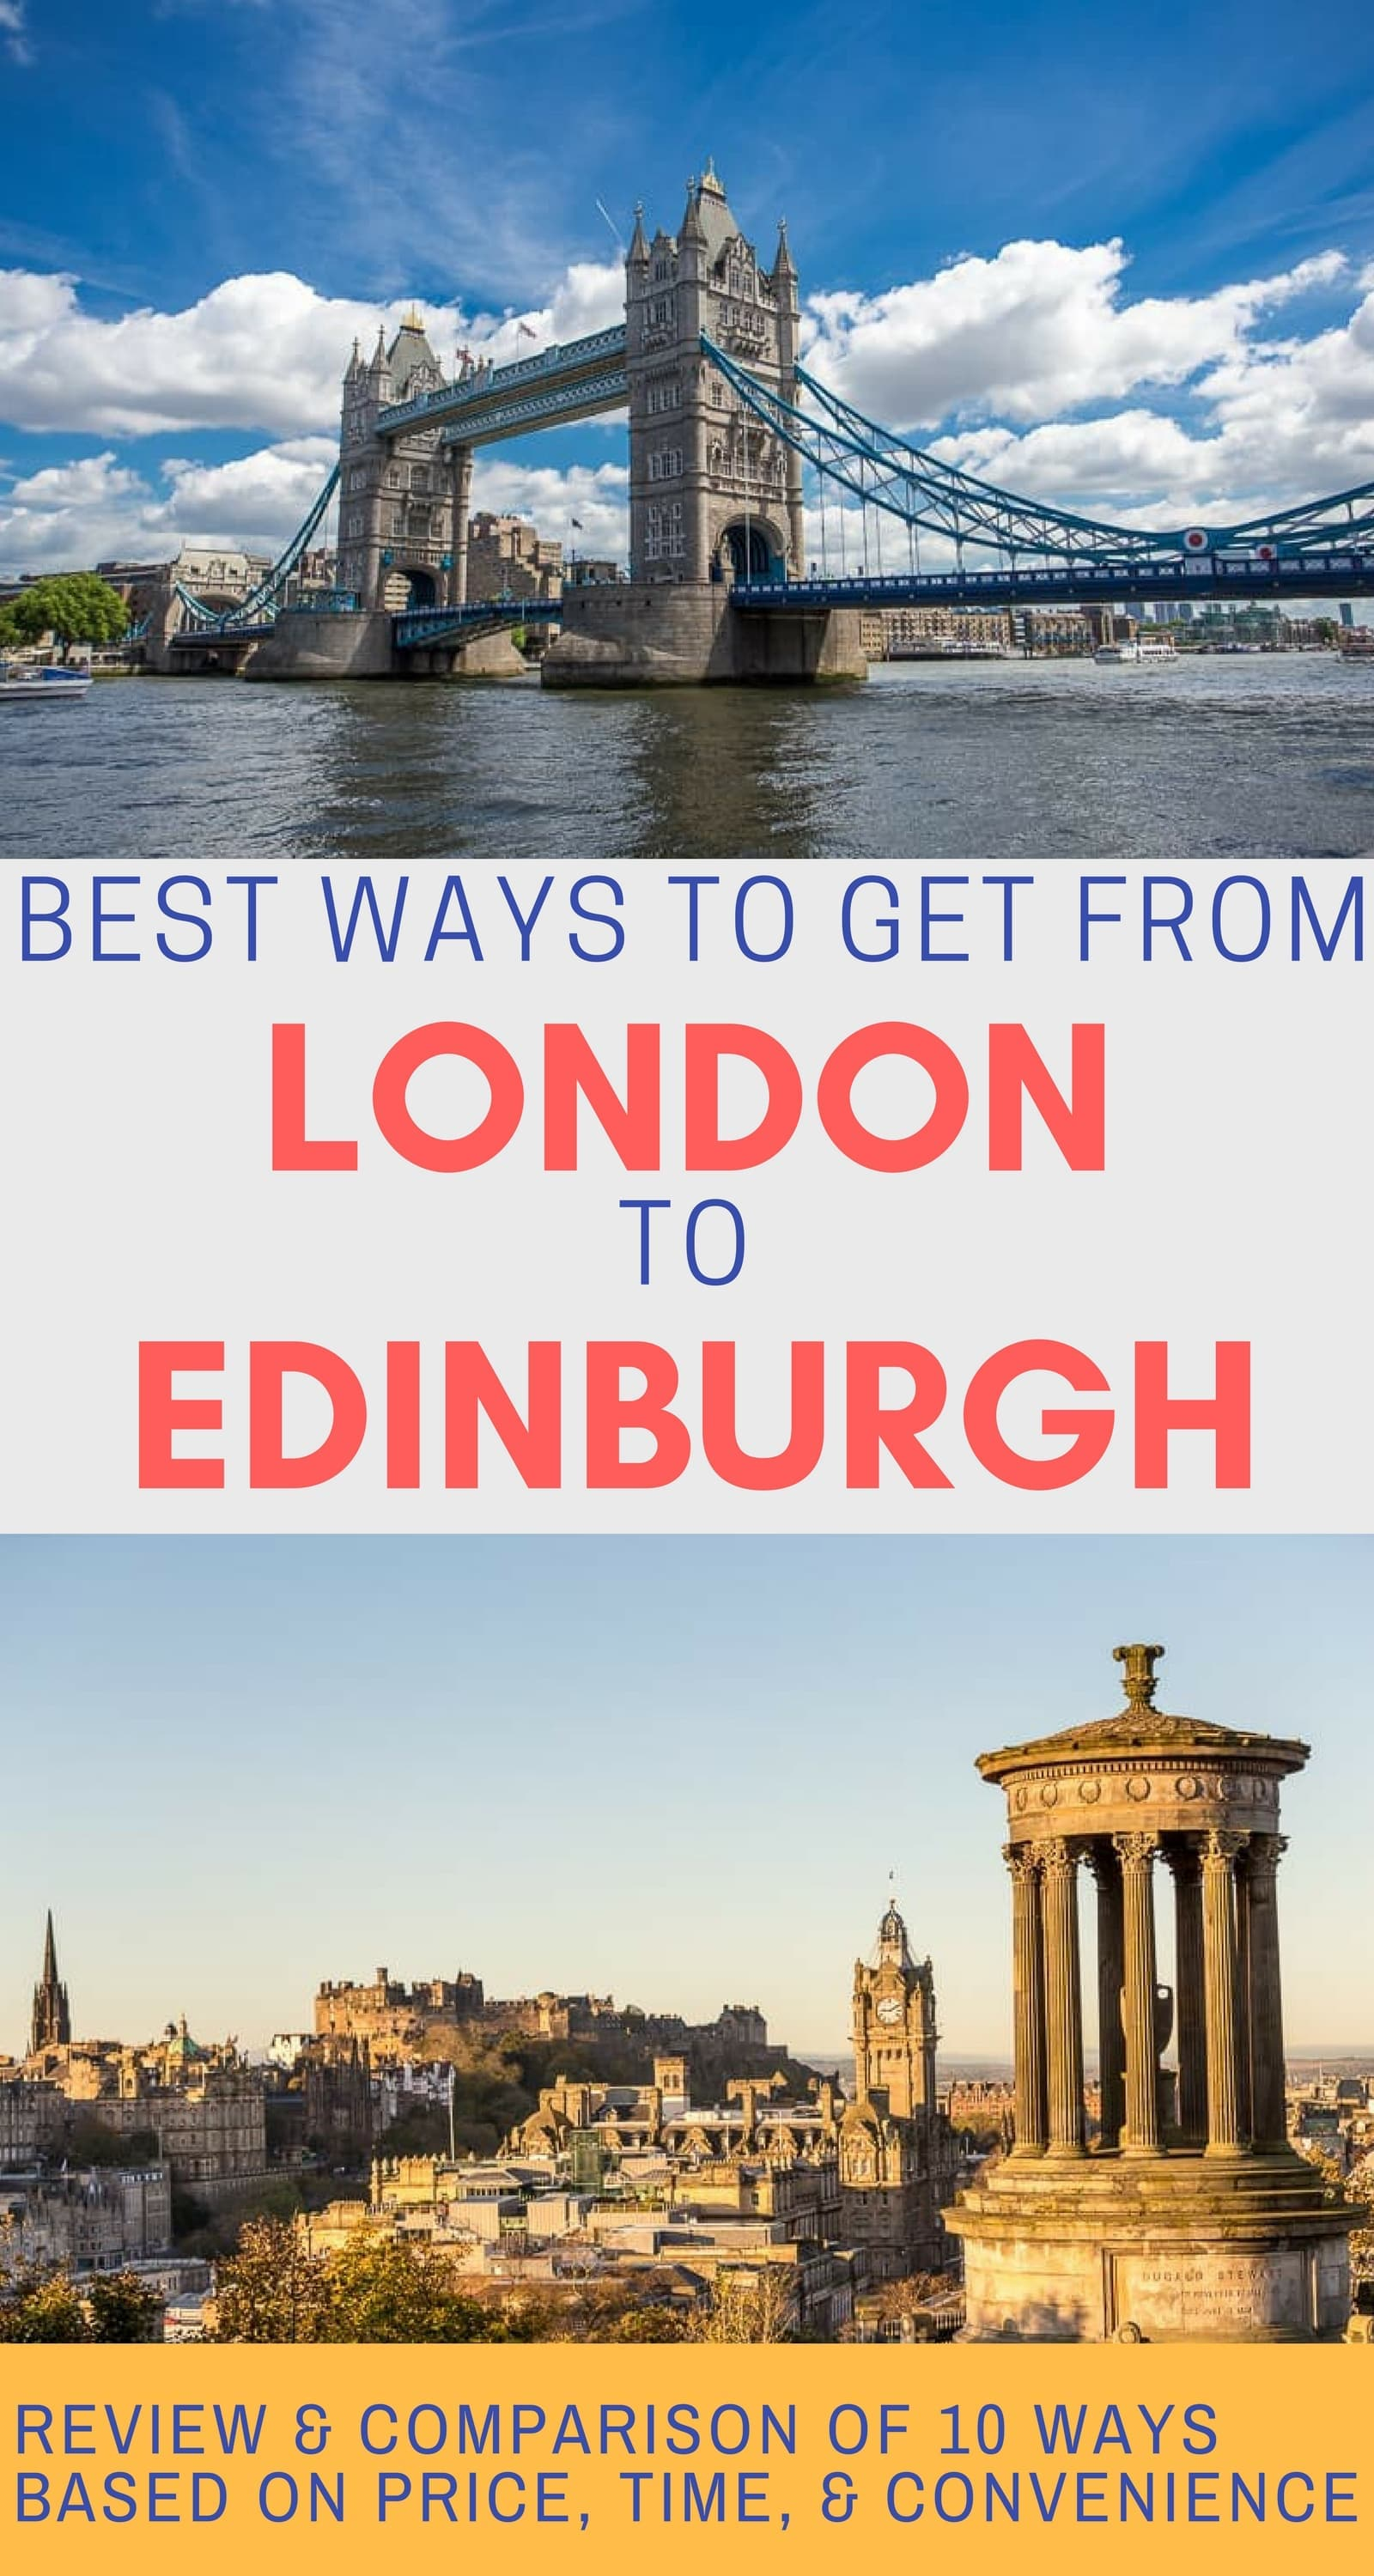 A guide to how to get from London to Edinburgh or vice versa. The article reviews 10 different way to travel from London to Edinburgh and compares them by price, time, and convenience. Includes flying, trains, buses, driving, ride sharing, biking, tours, and private transfers. #London #Edinburgh #LondontoEdinburgh #UKtravel